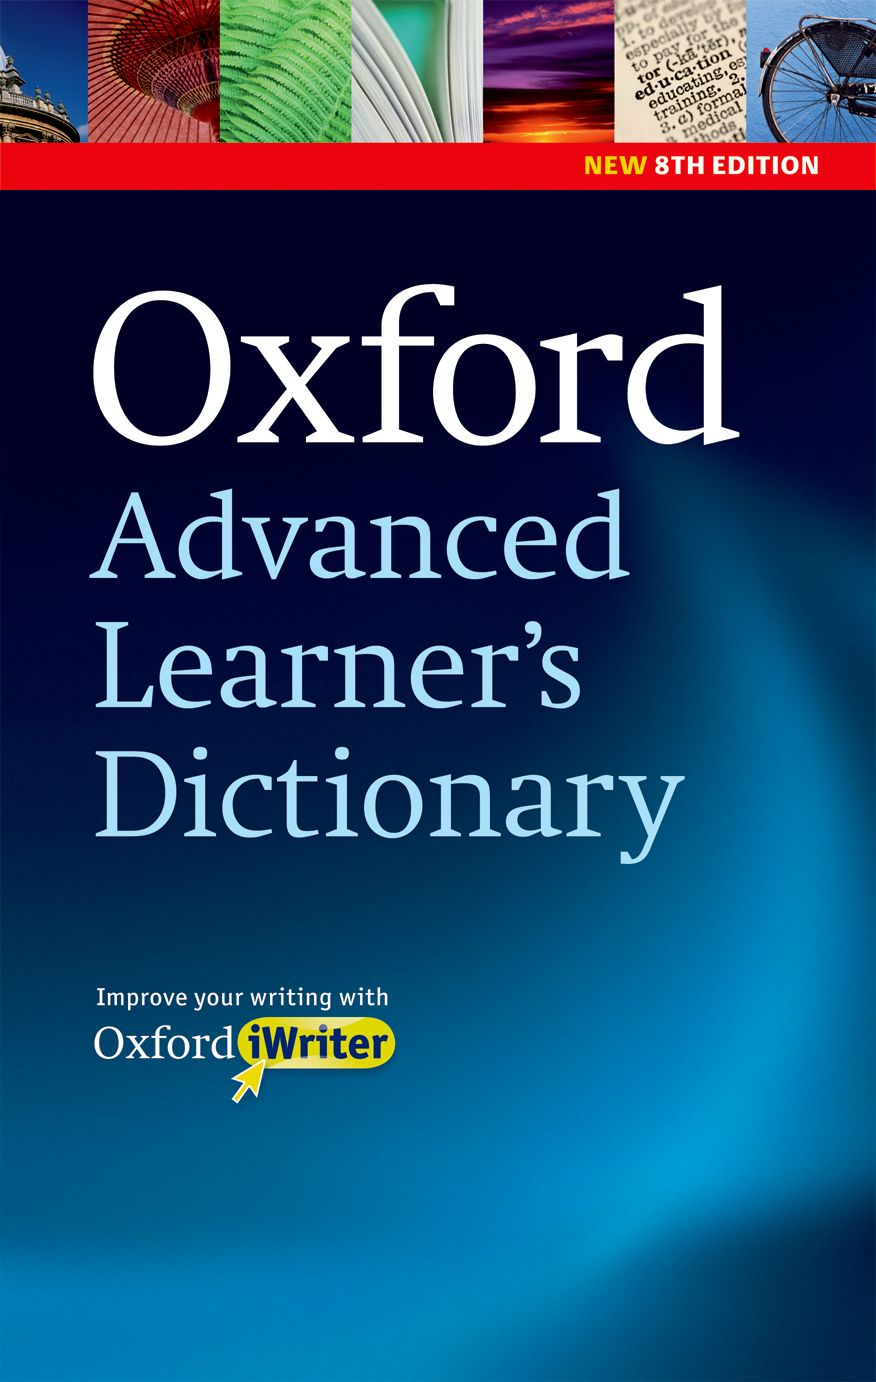 Oxford Advanced Learner's Dictionary, 8th Edition Paperback with CD-ROM